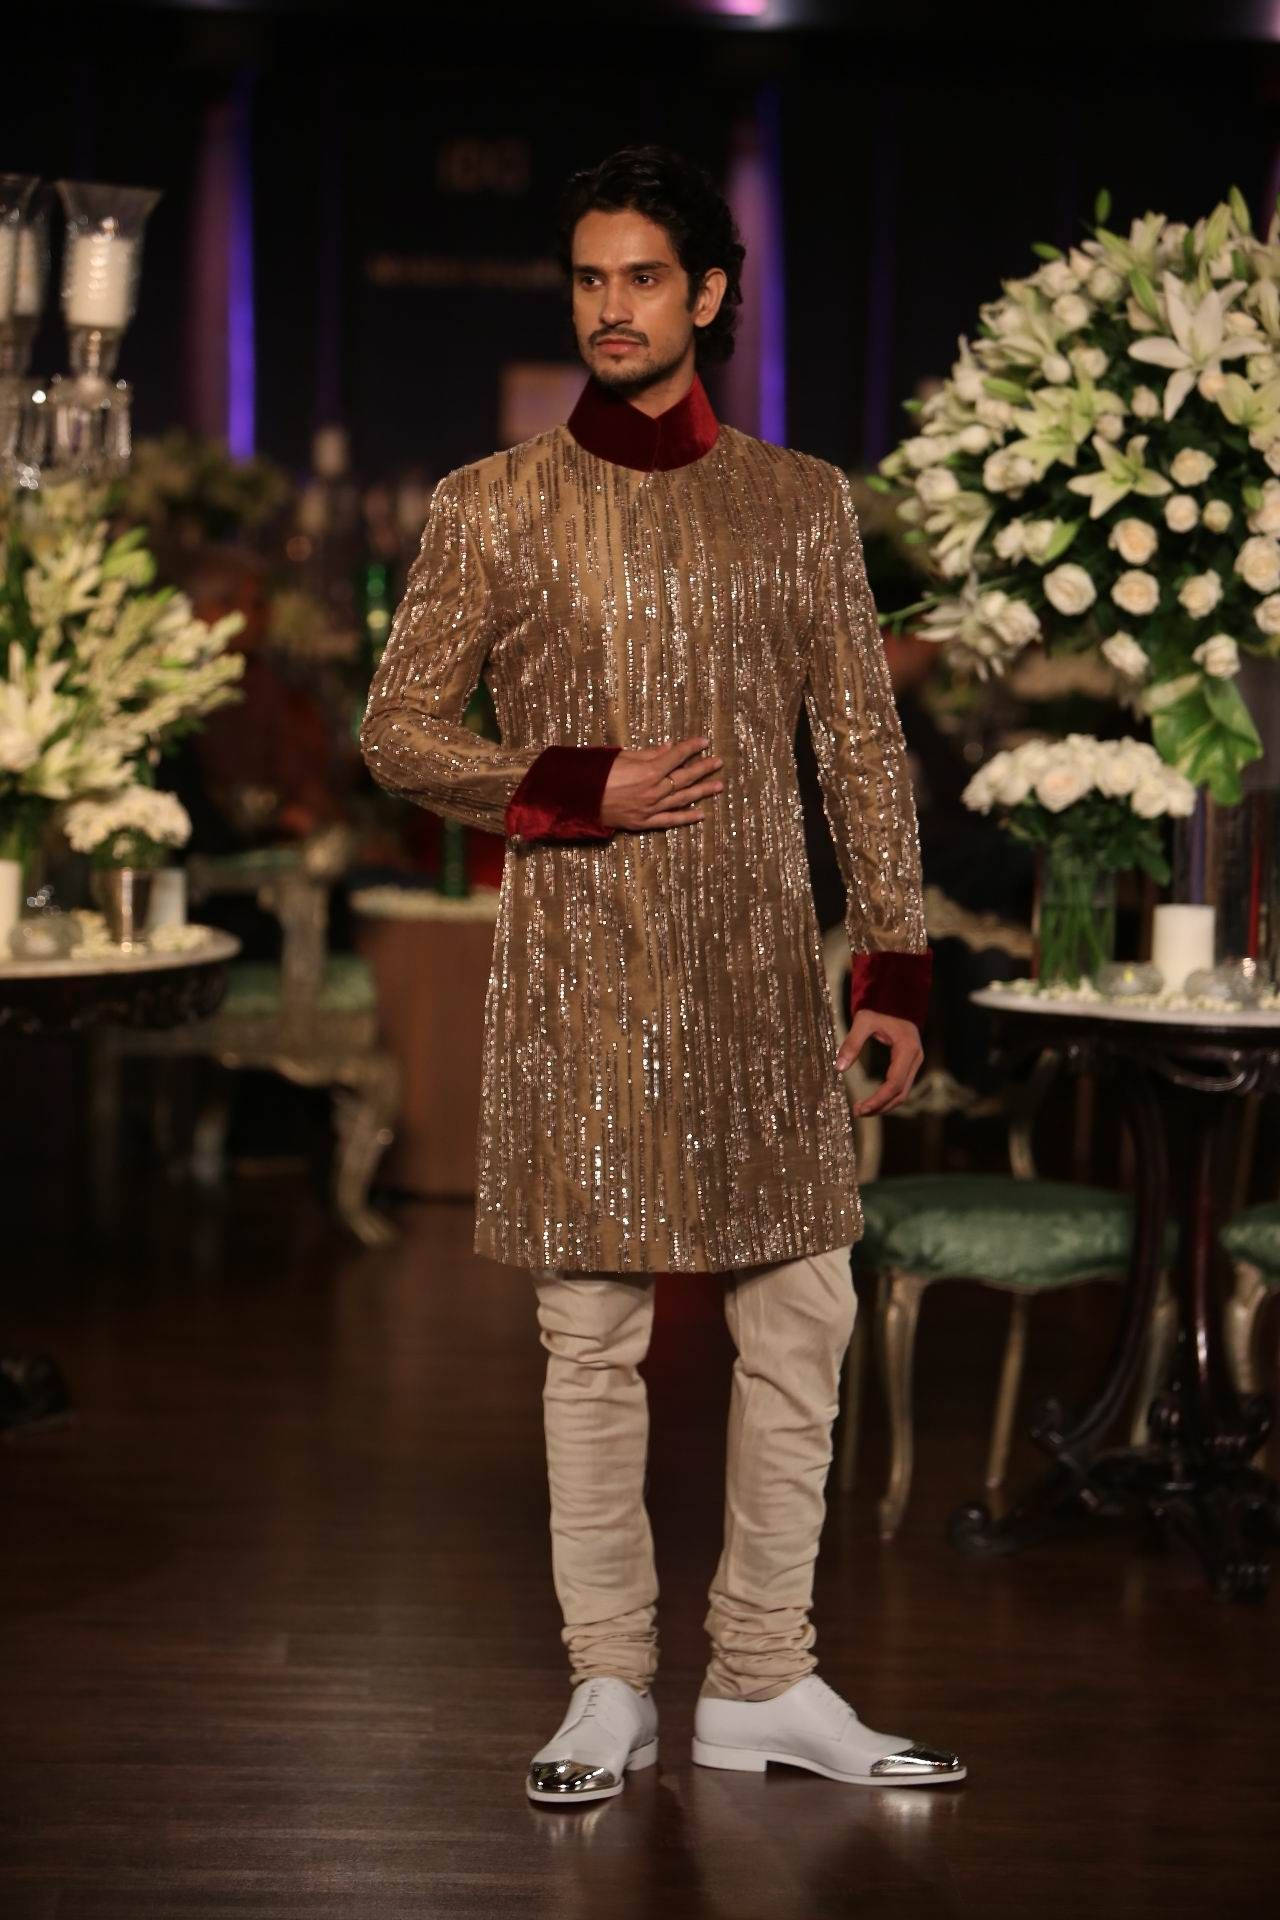 93180a004f1 Manish Malhotra Latest Collections of Indian Top Designer Men Sherwani  Designs for Weddings   Parties 2015 (2)